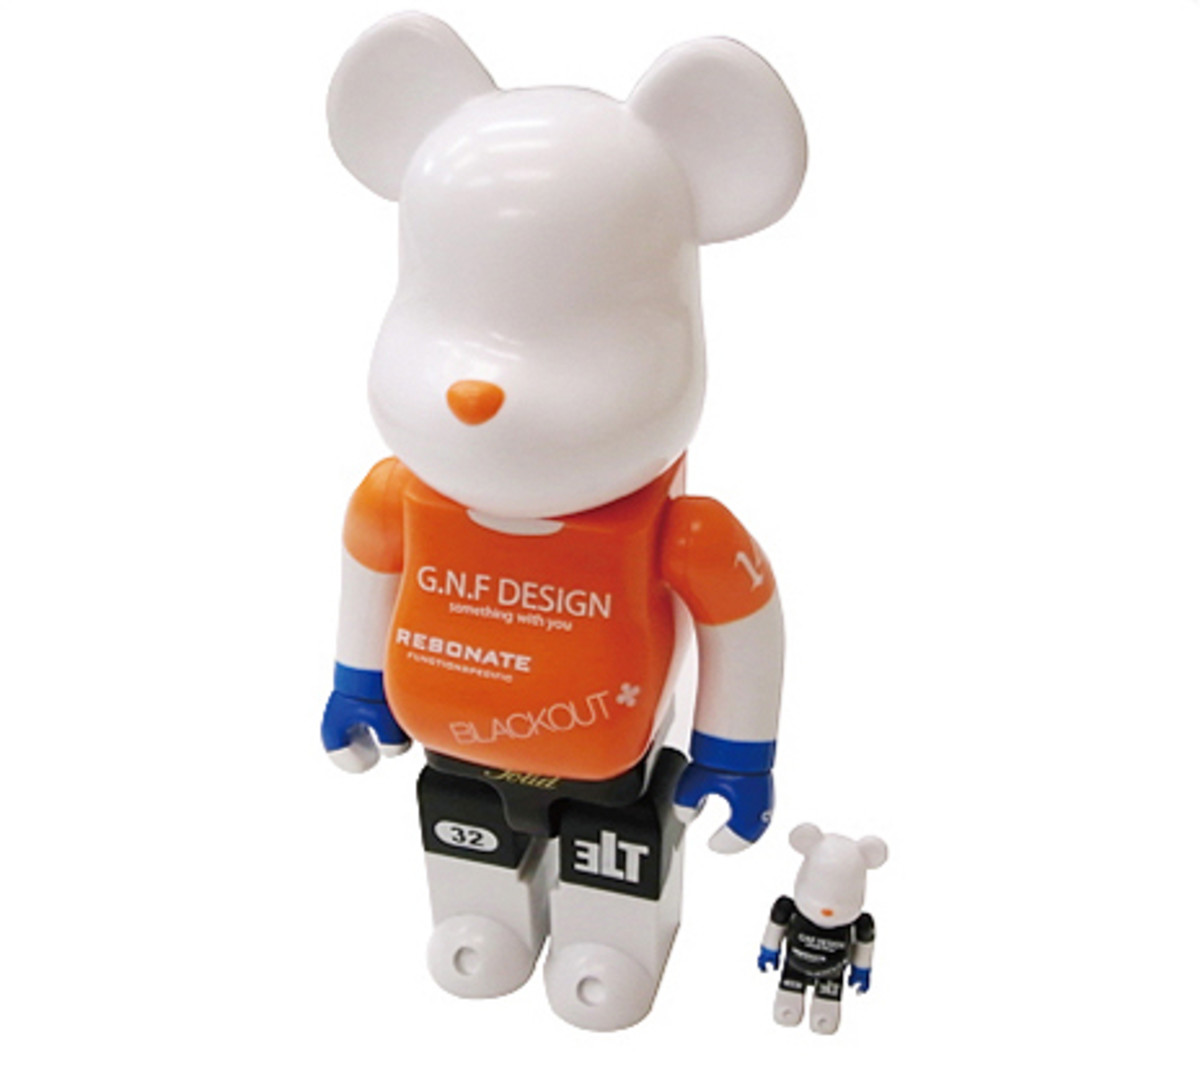 Gallery1950 x MEDICOM - 14th Anniversary BE@RBRICK - 01